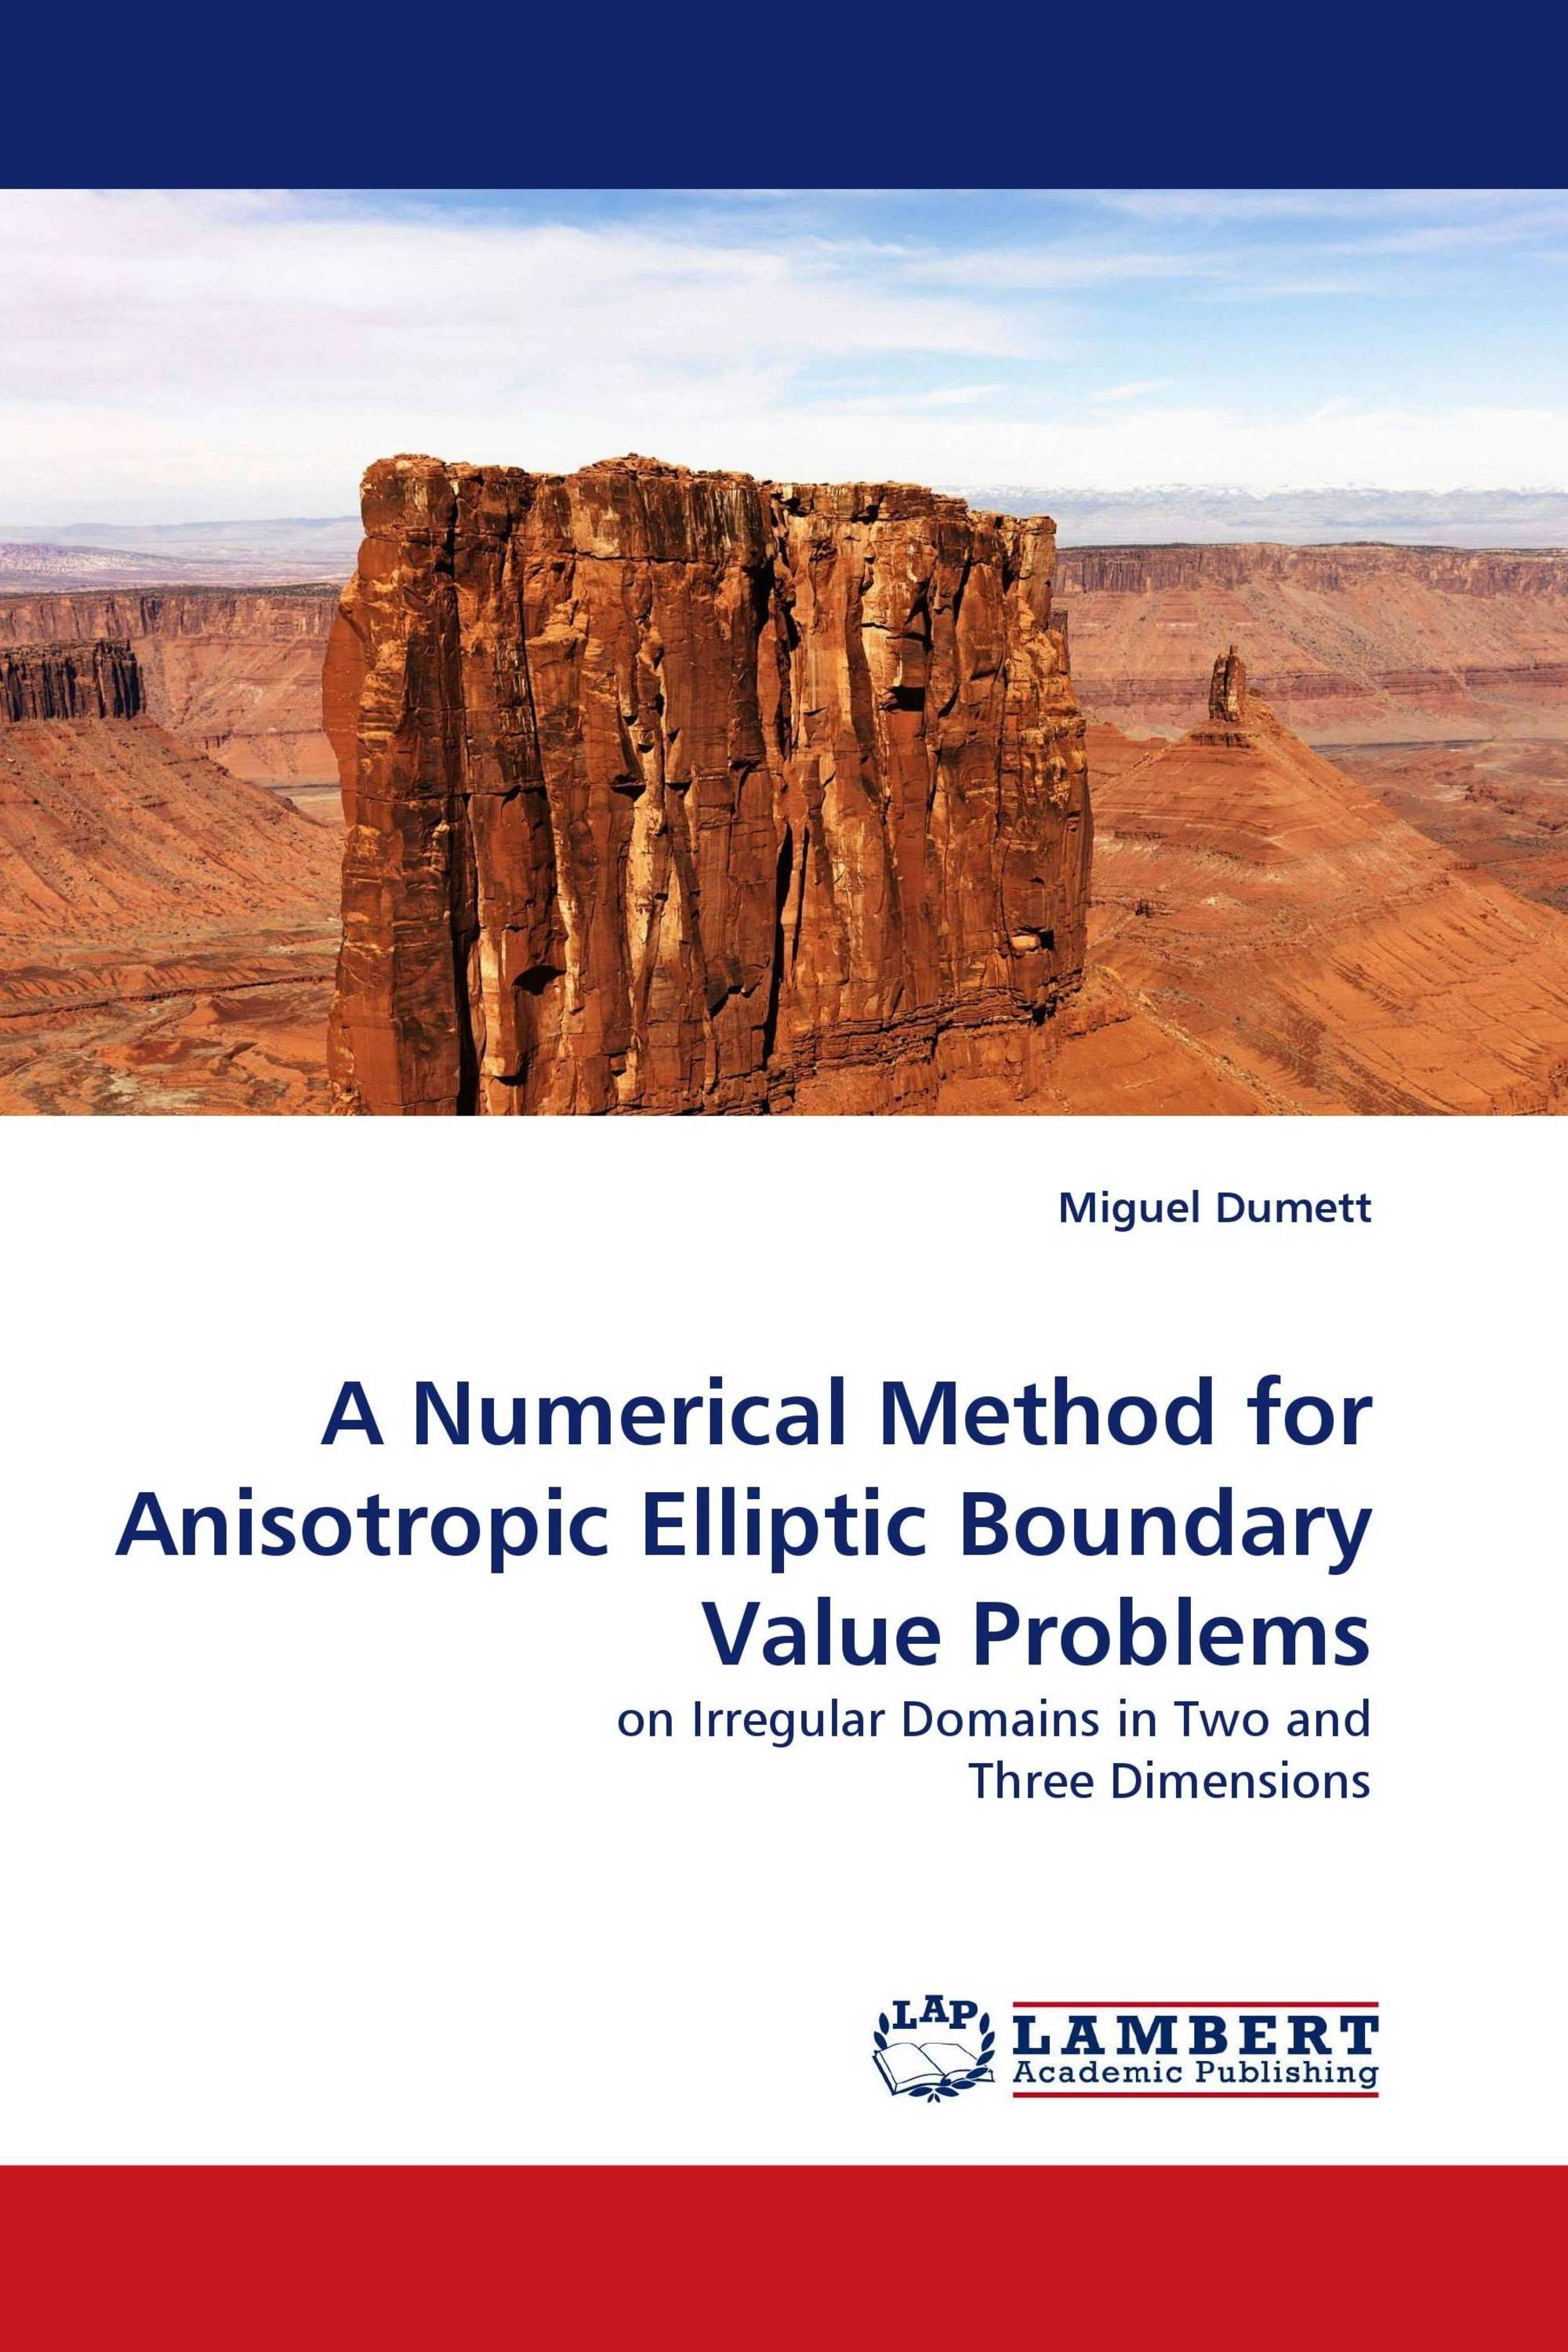 A Numerical Method for Anisotropic Elliptic Boundary Value Problems